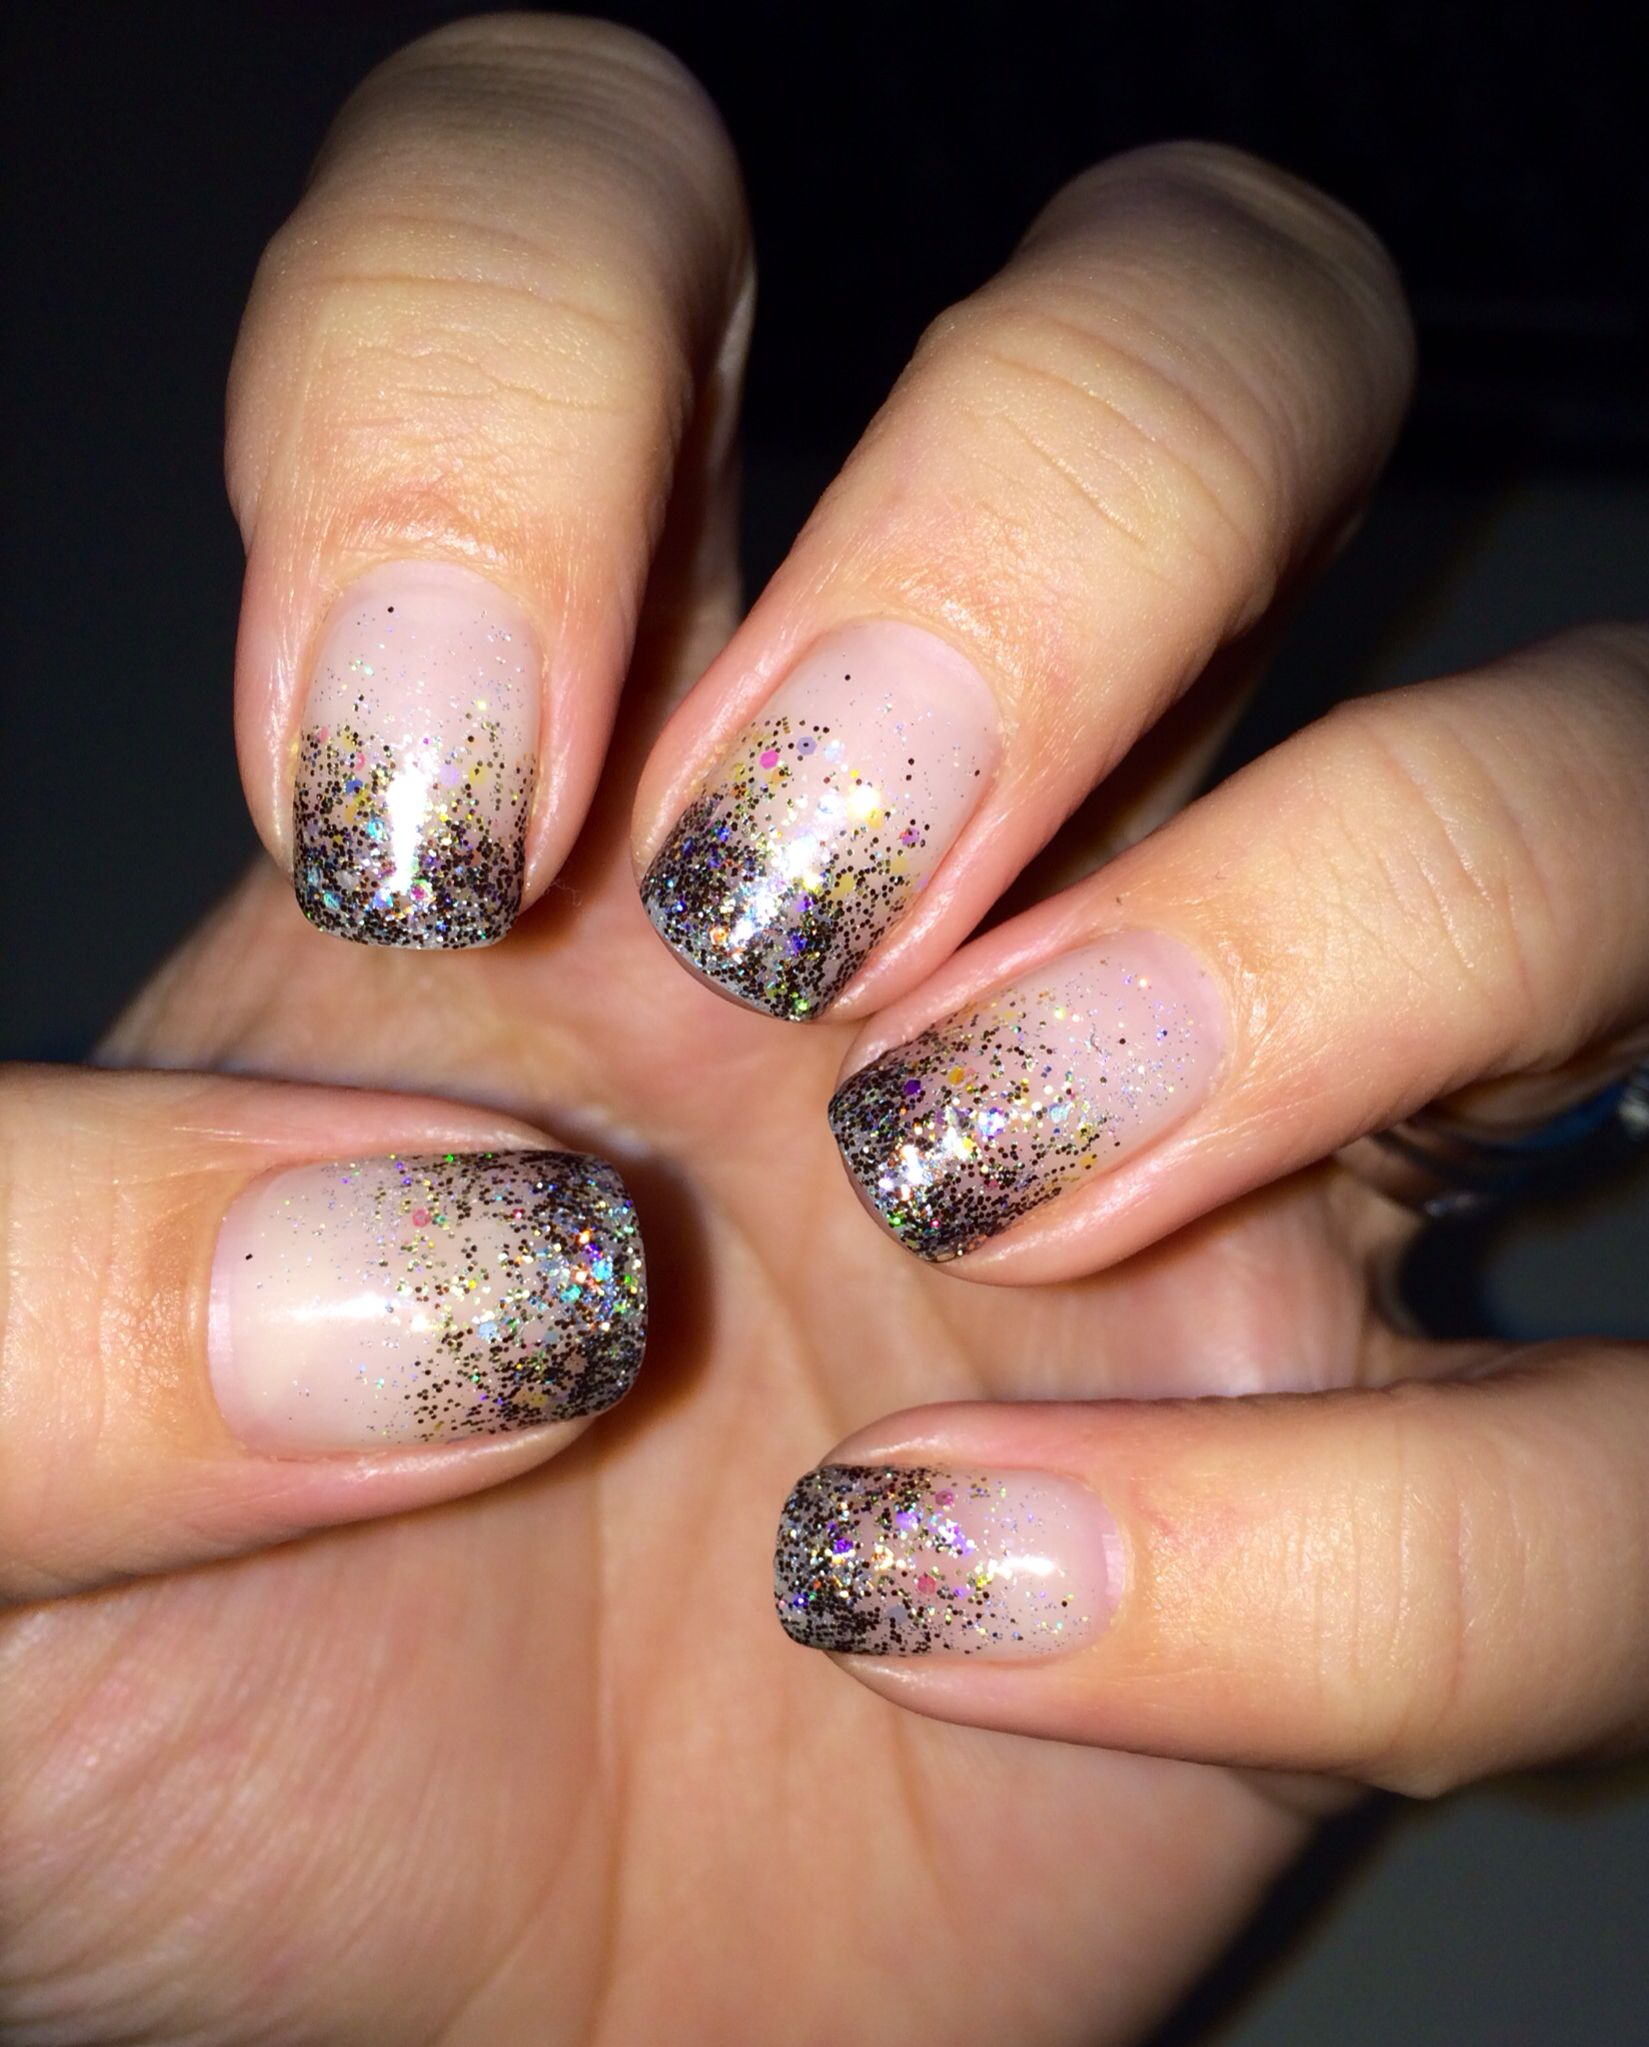 29 Latest Nail Art Designs Ideas: Gel Nails. New Years Gel Nail Design. Sparkles, Glittery